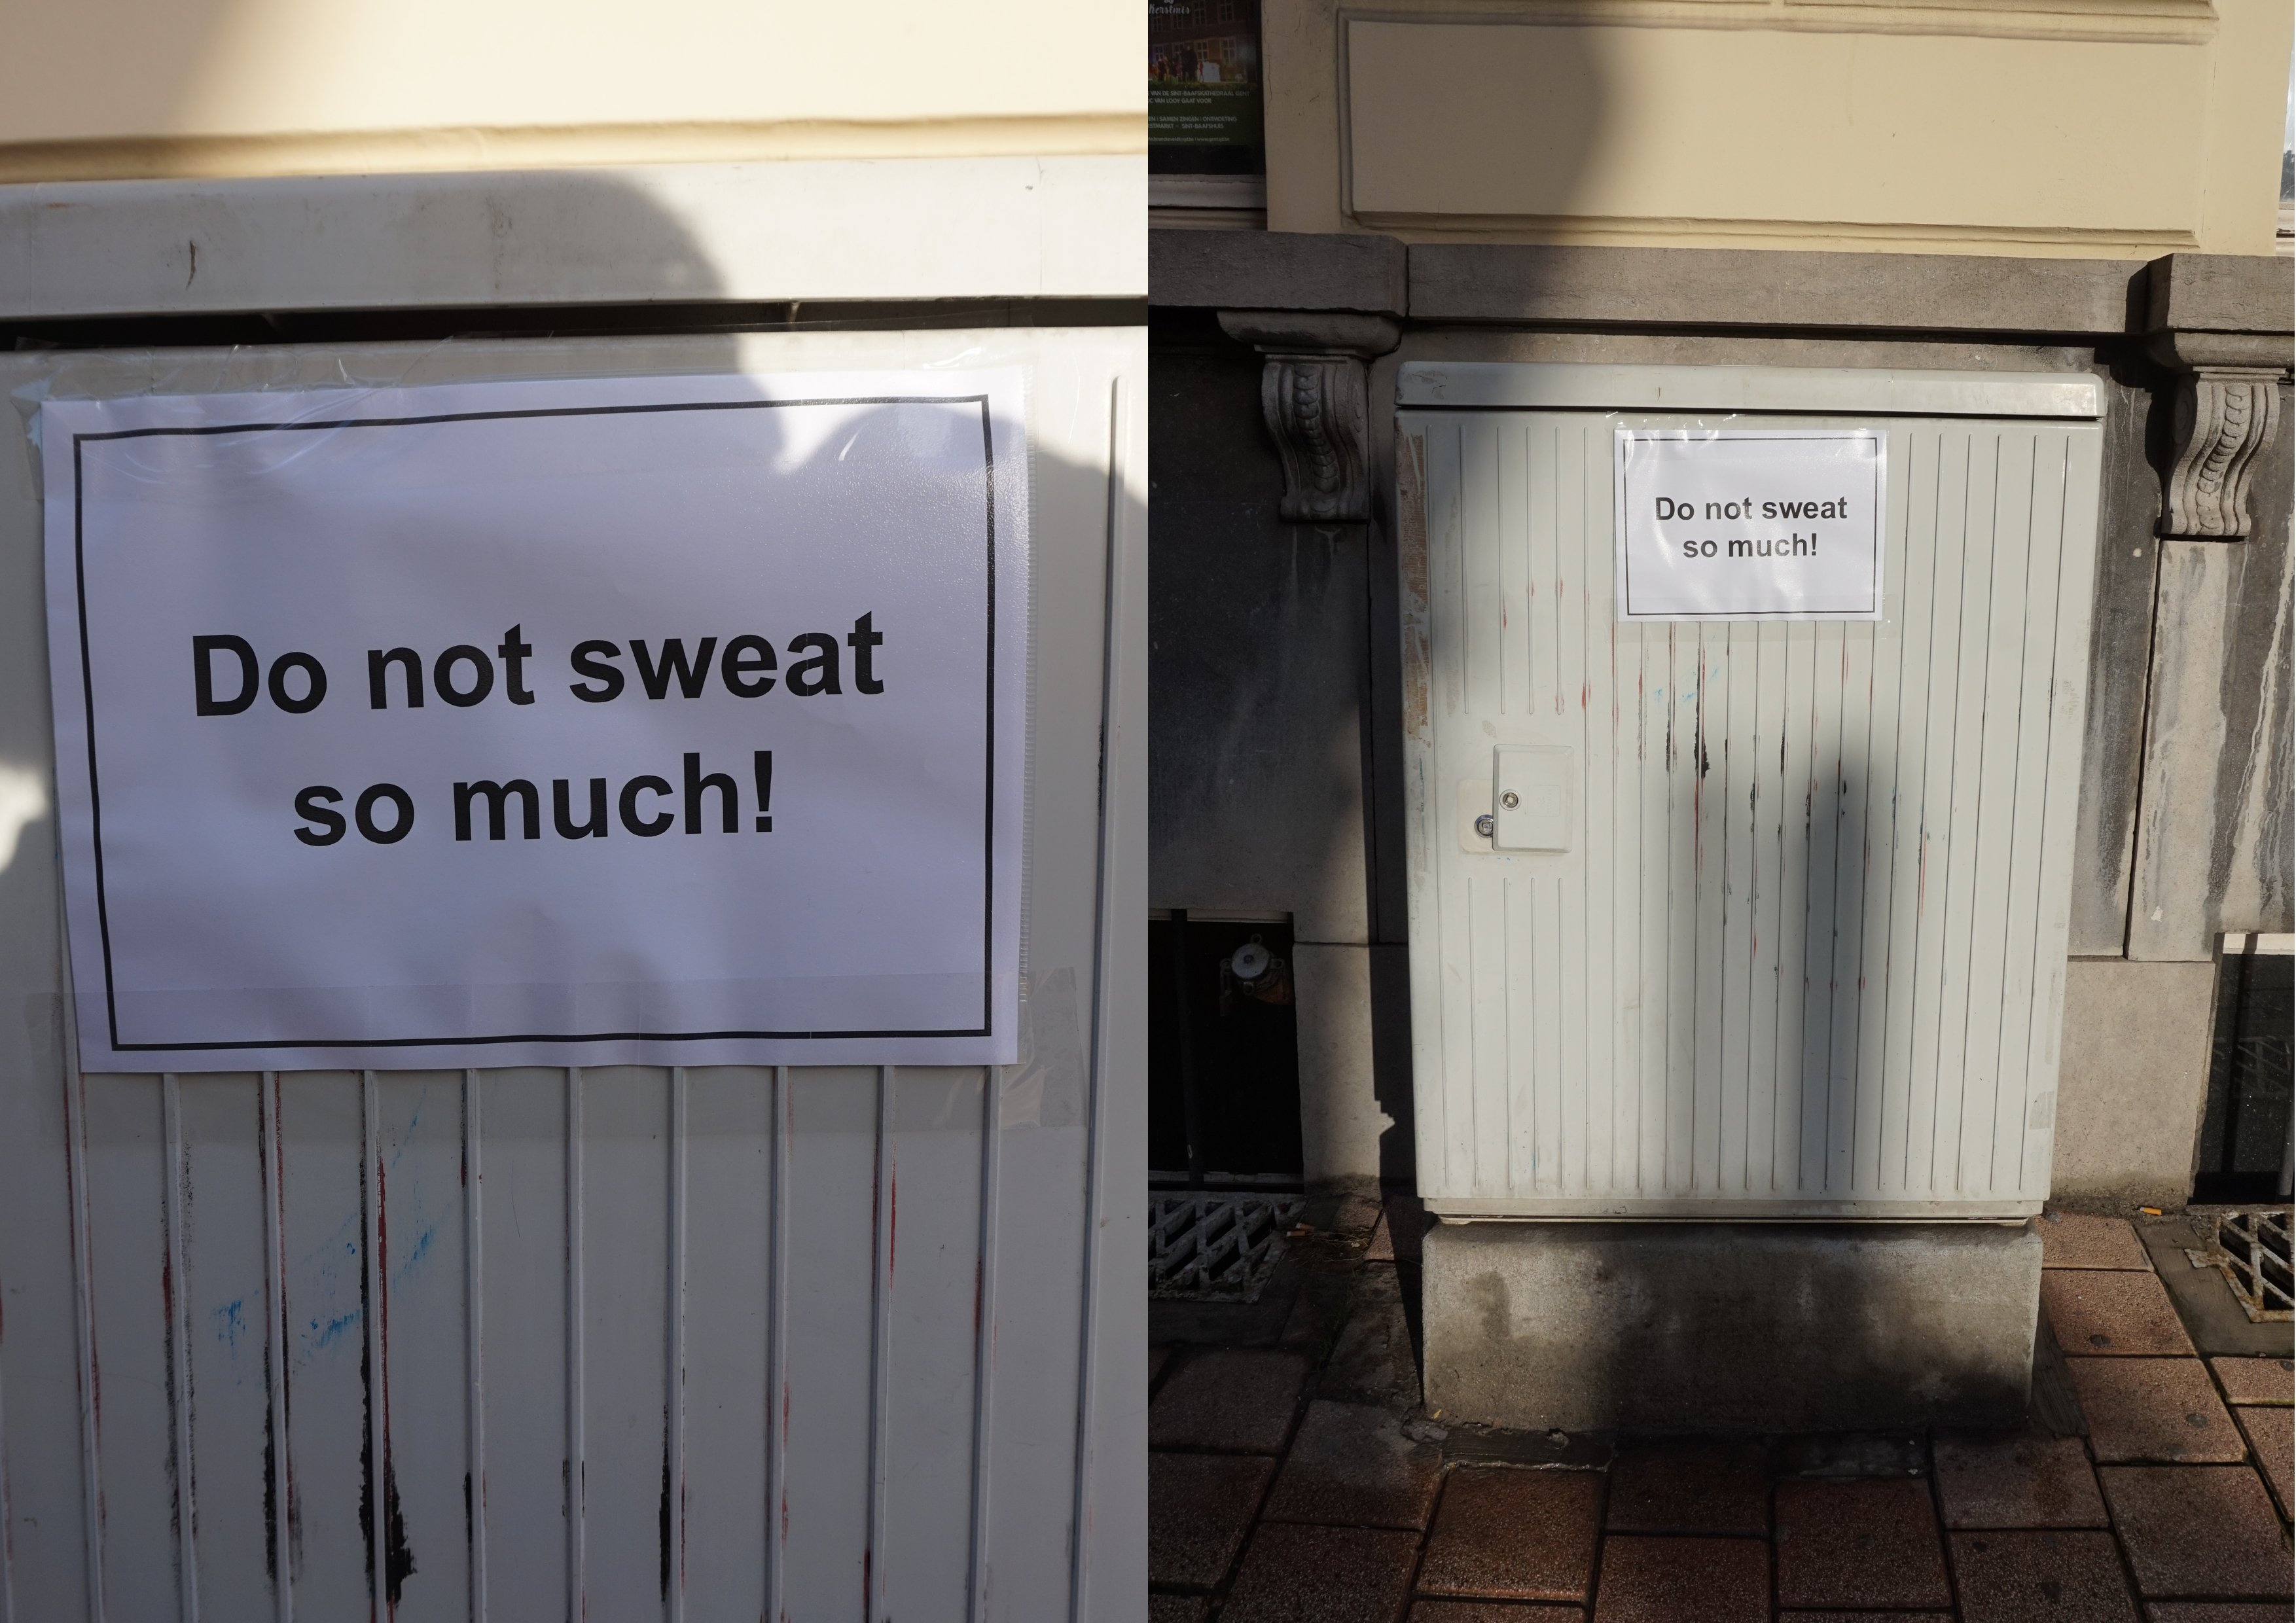 Do not sweat so much!